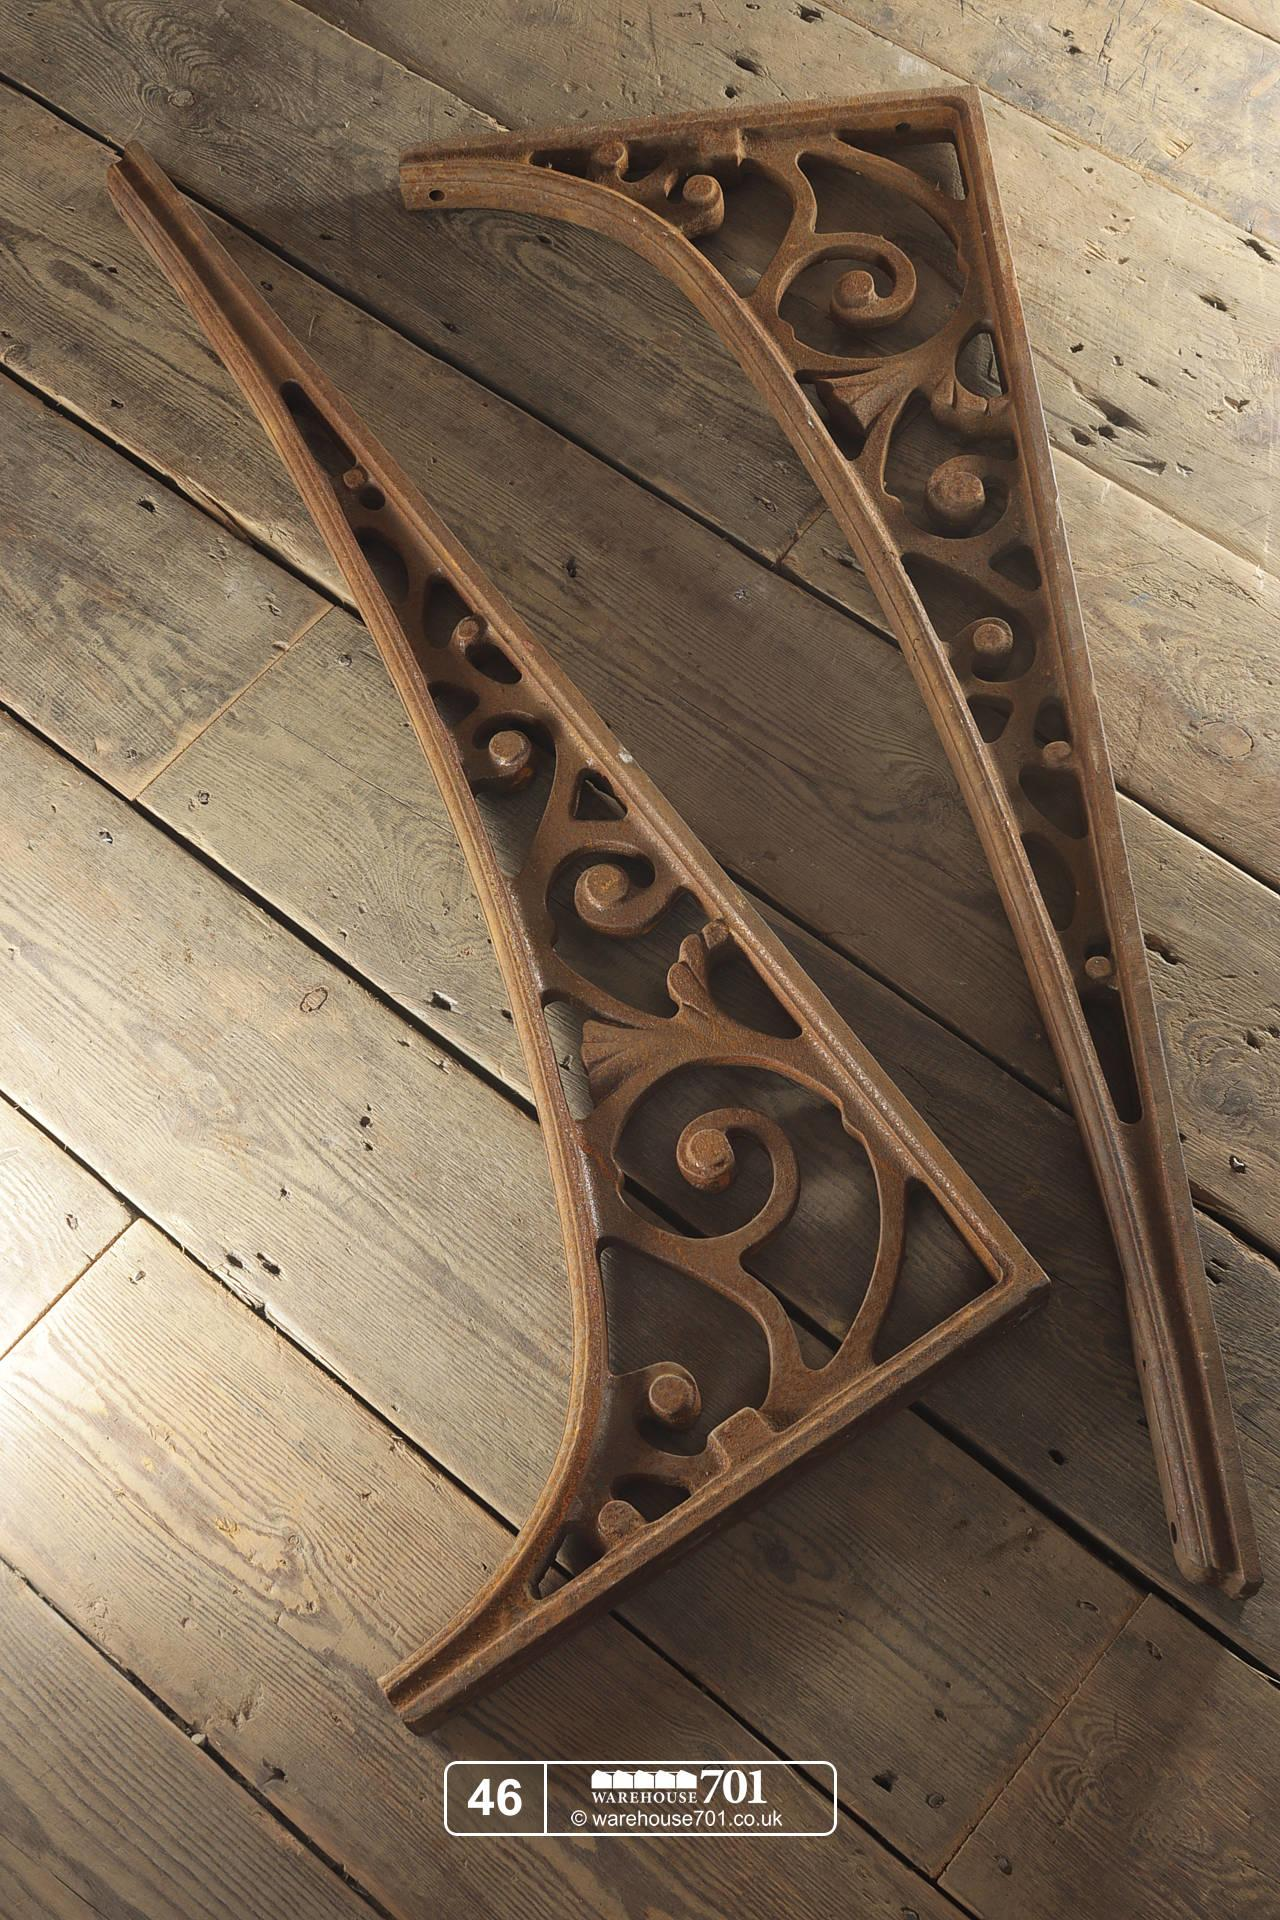 Very Large Salvaged Cast Iron Brackets from Foundry (No. 46) #2